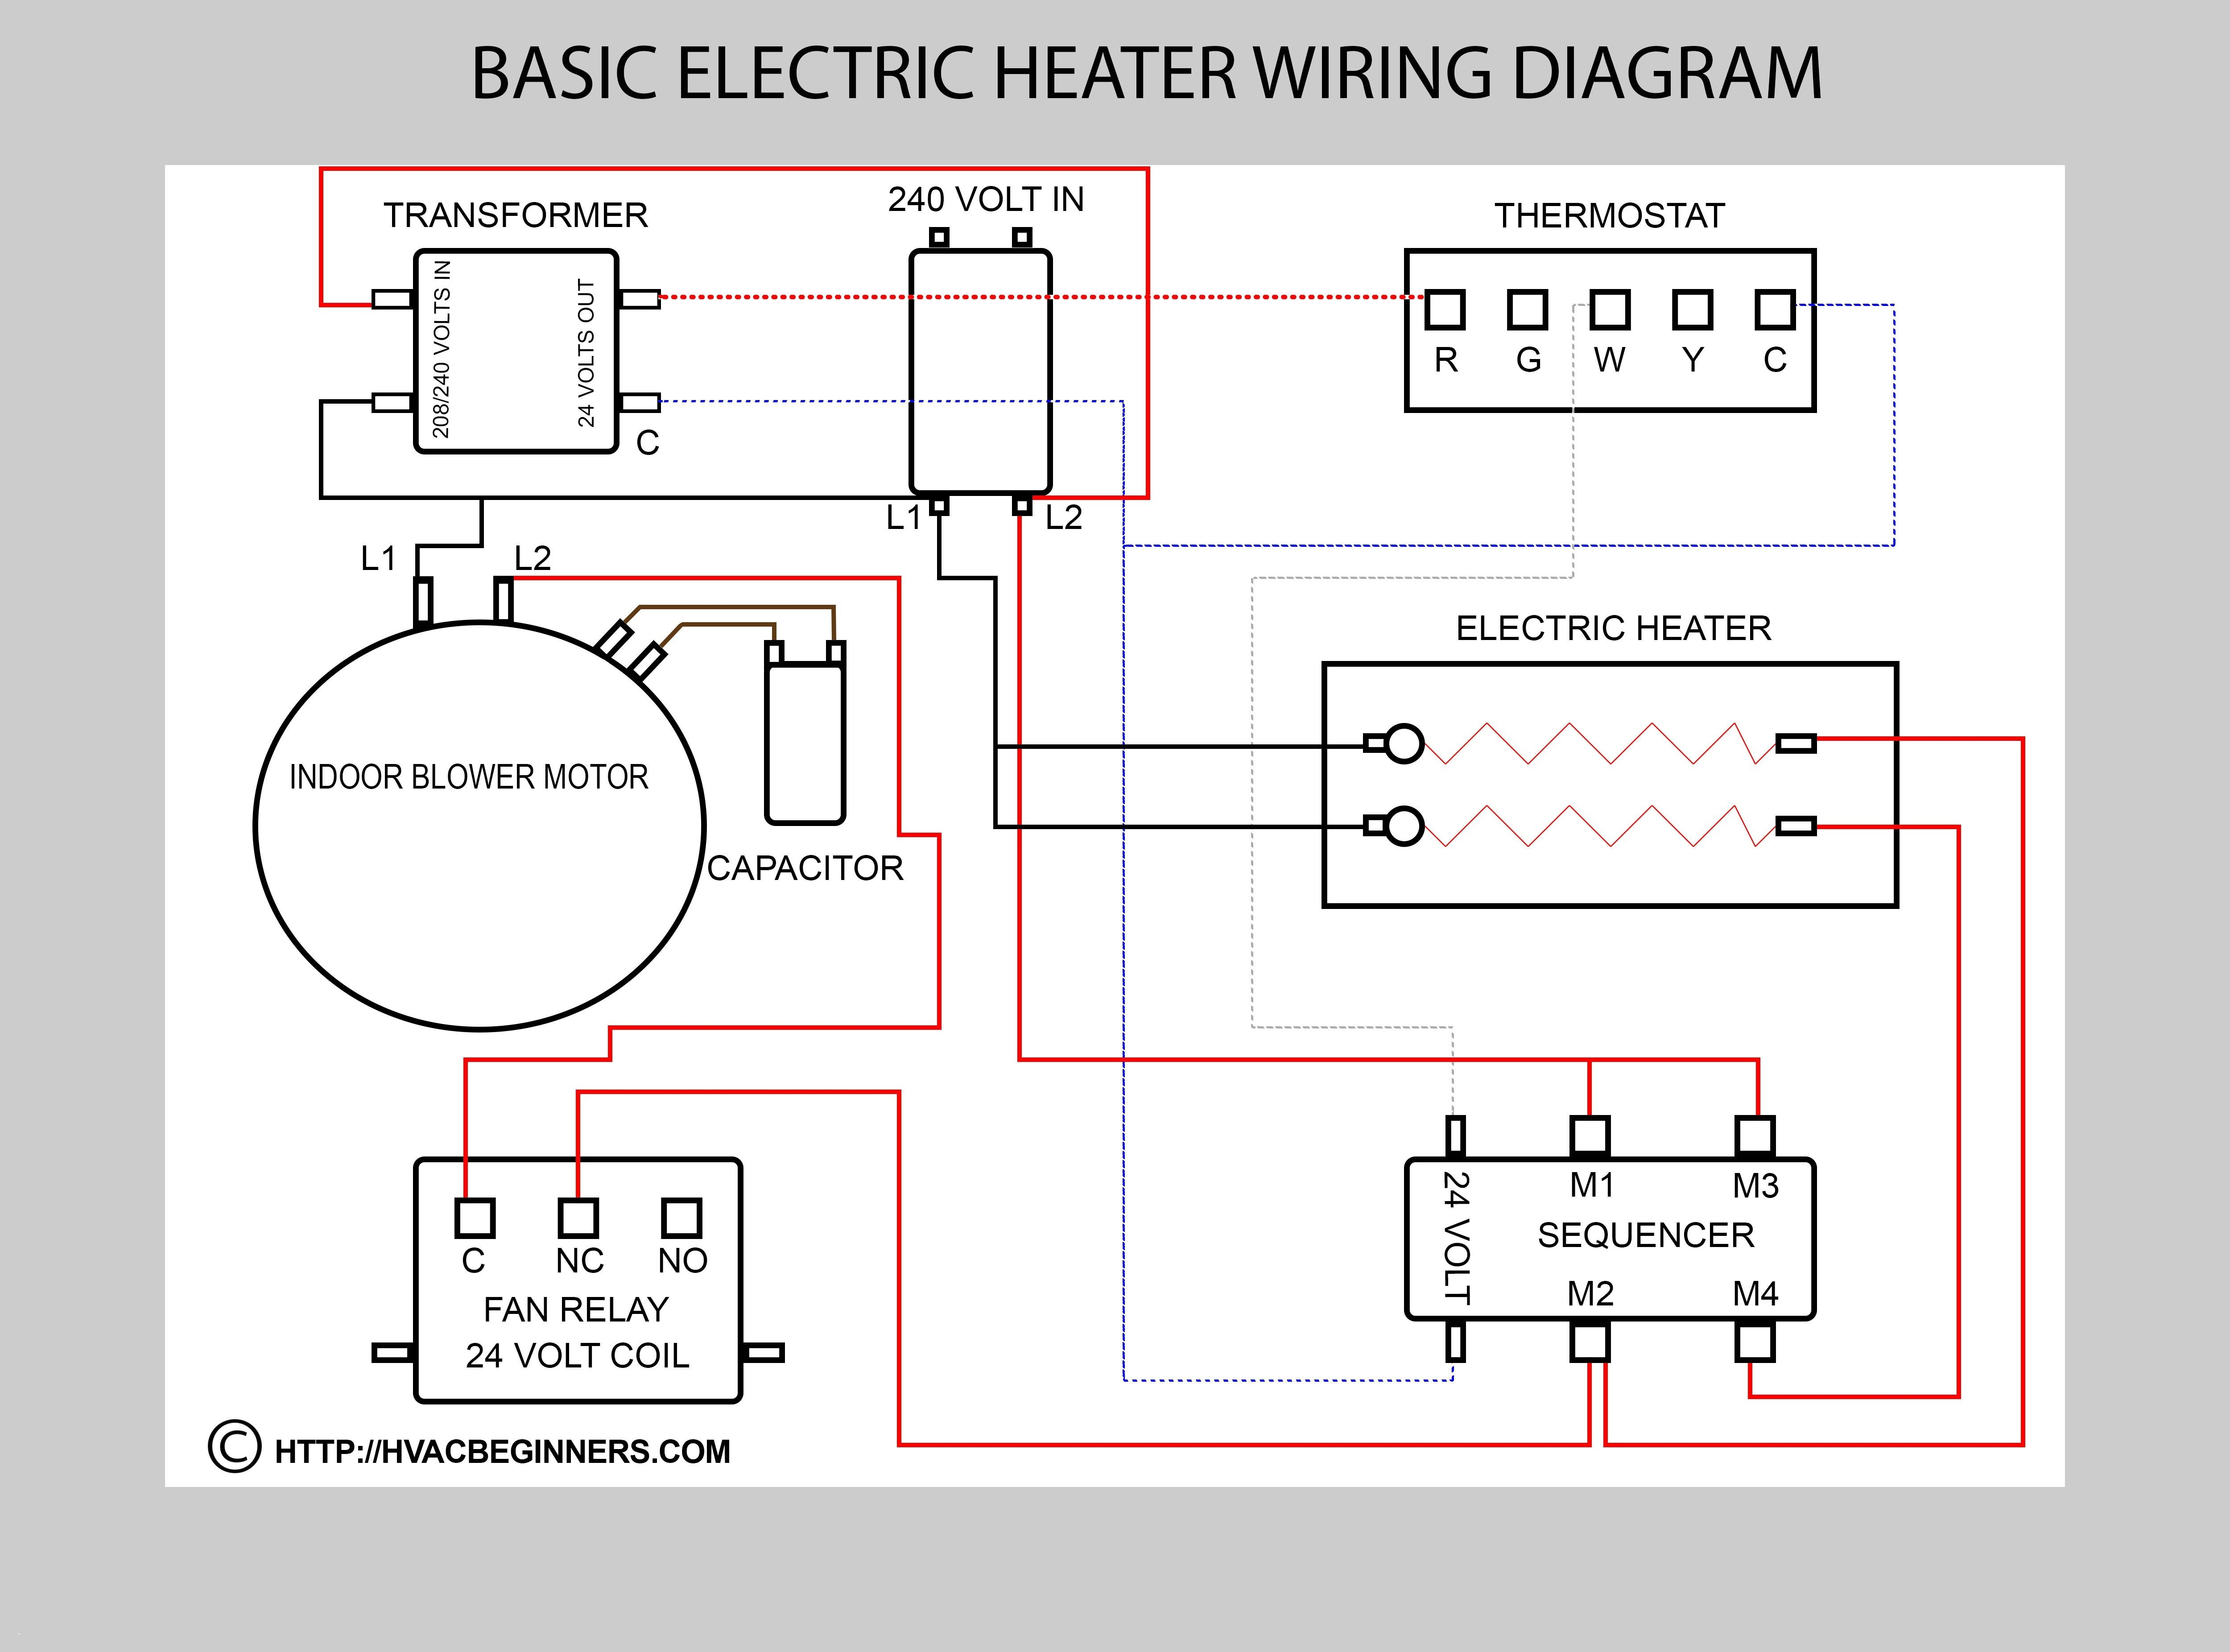 Air Conditioning thermostat Wiring Diagram 6420 Coleman thermostat Wiring Auto Wiring Diagram today • Of Air Conditioning thermostat Wiring Diagram